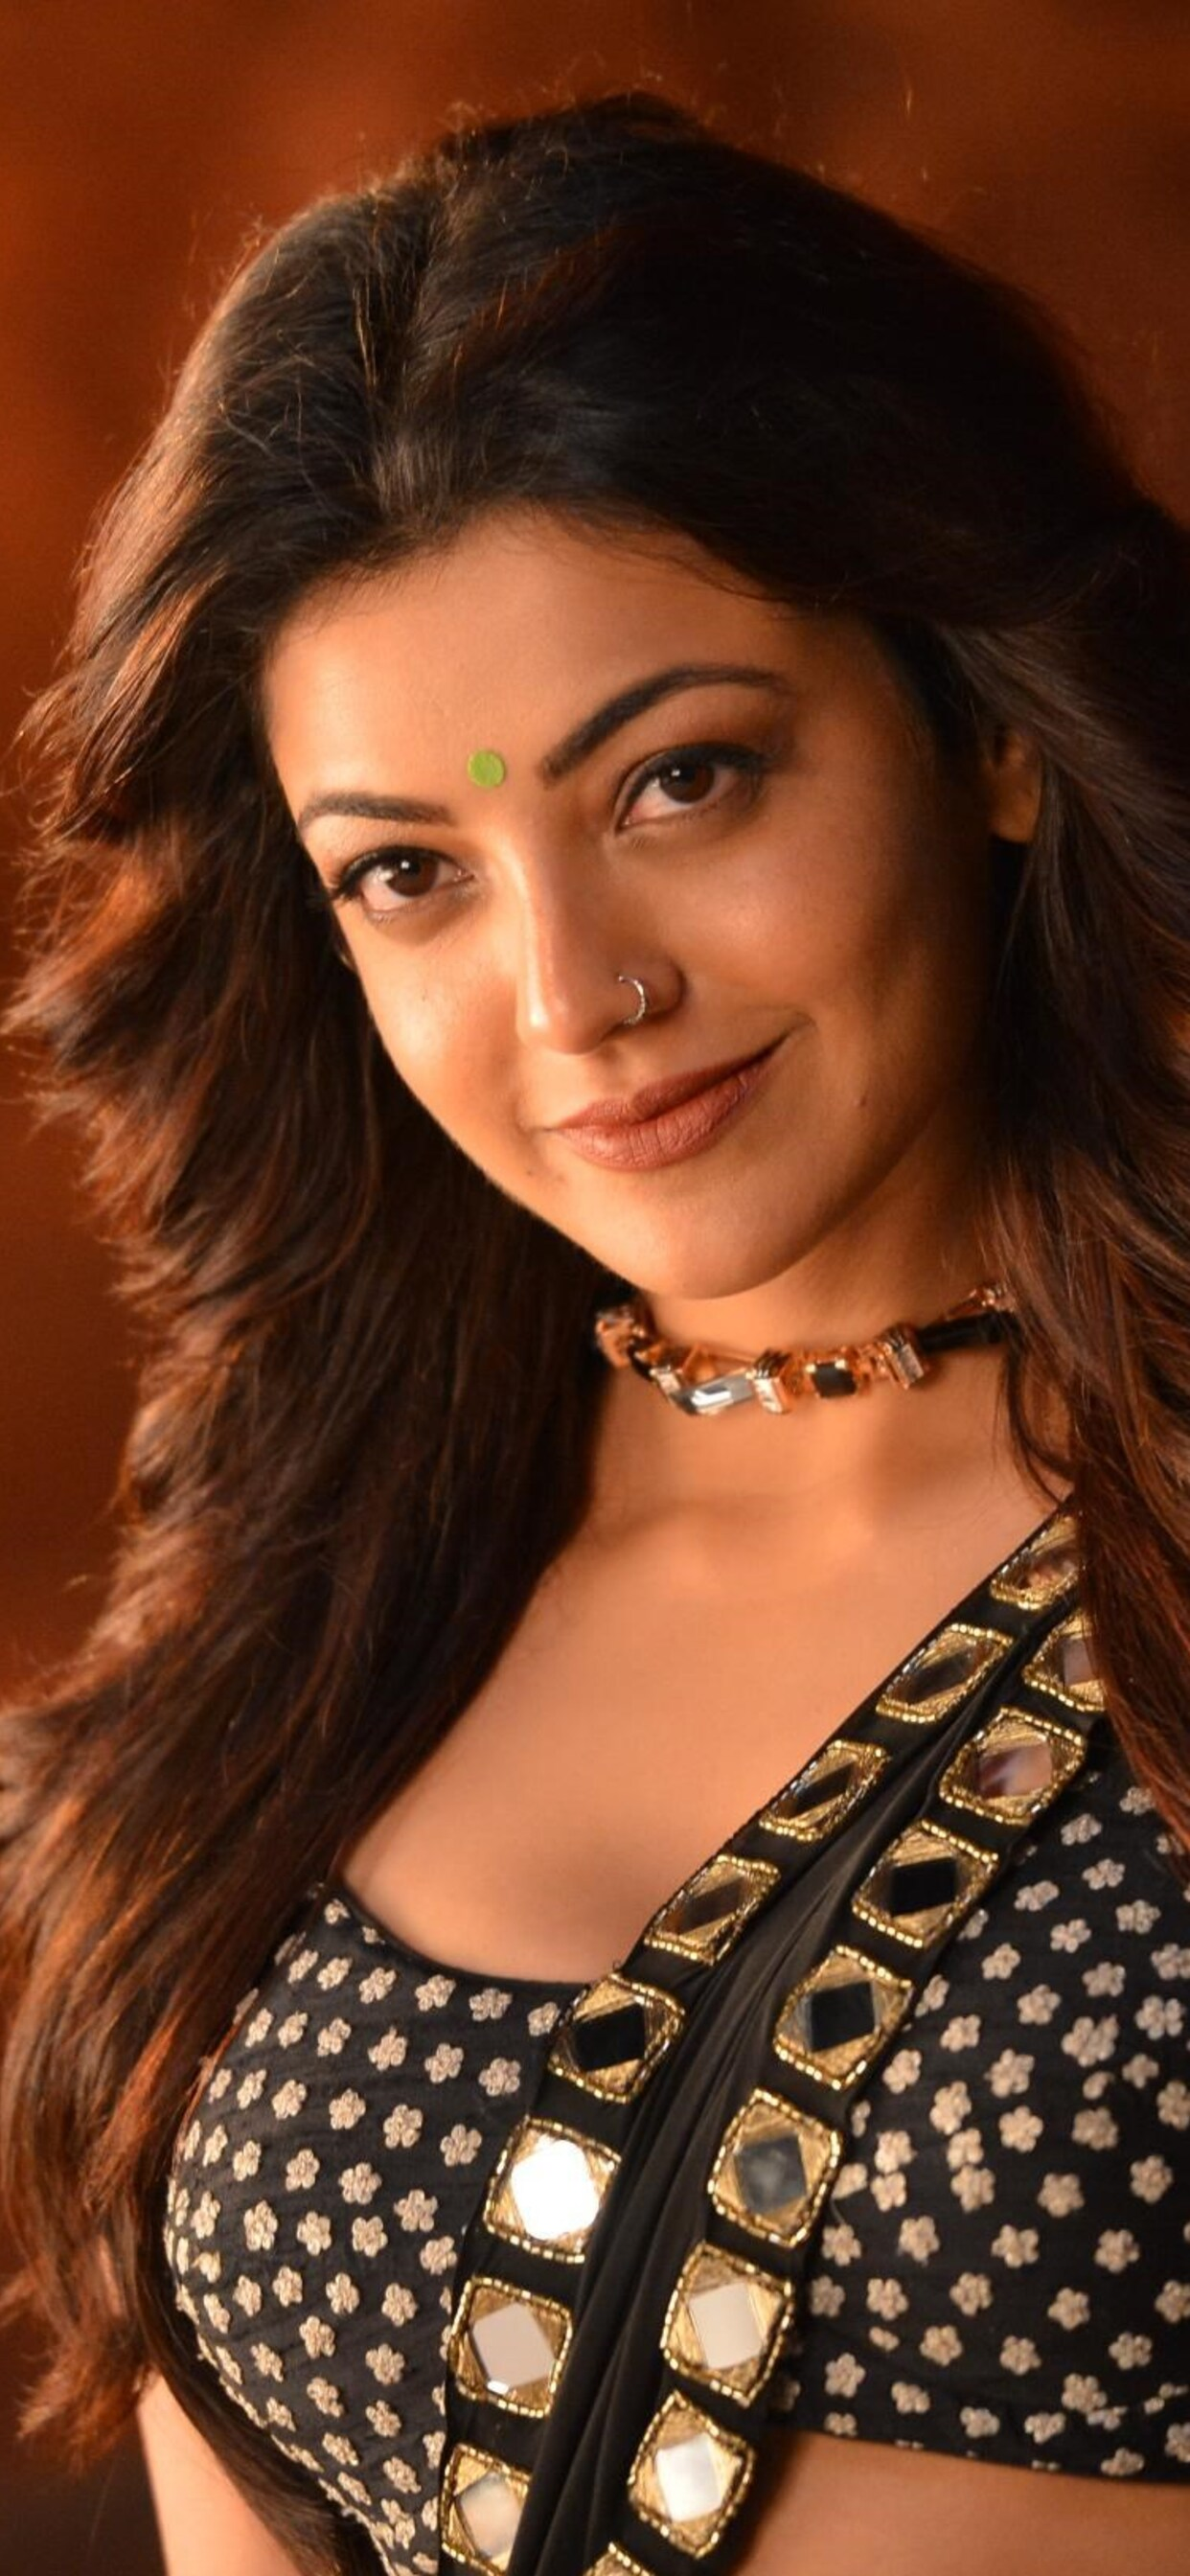 kajal-agarwal-in-pakka-local-image.jpg